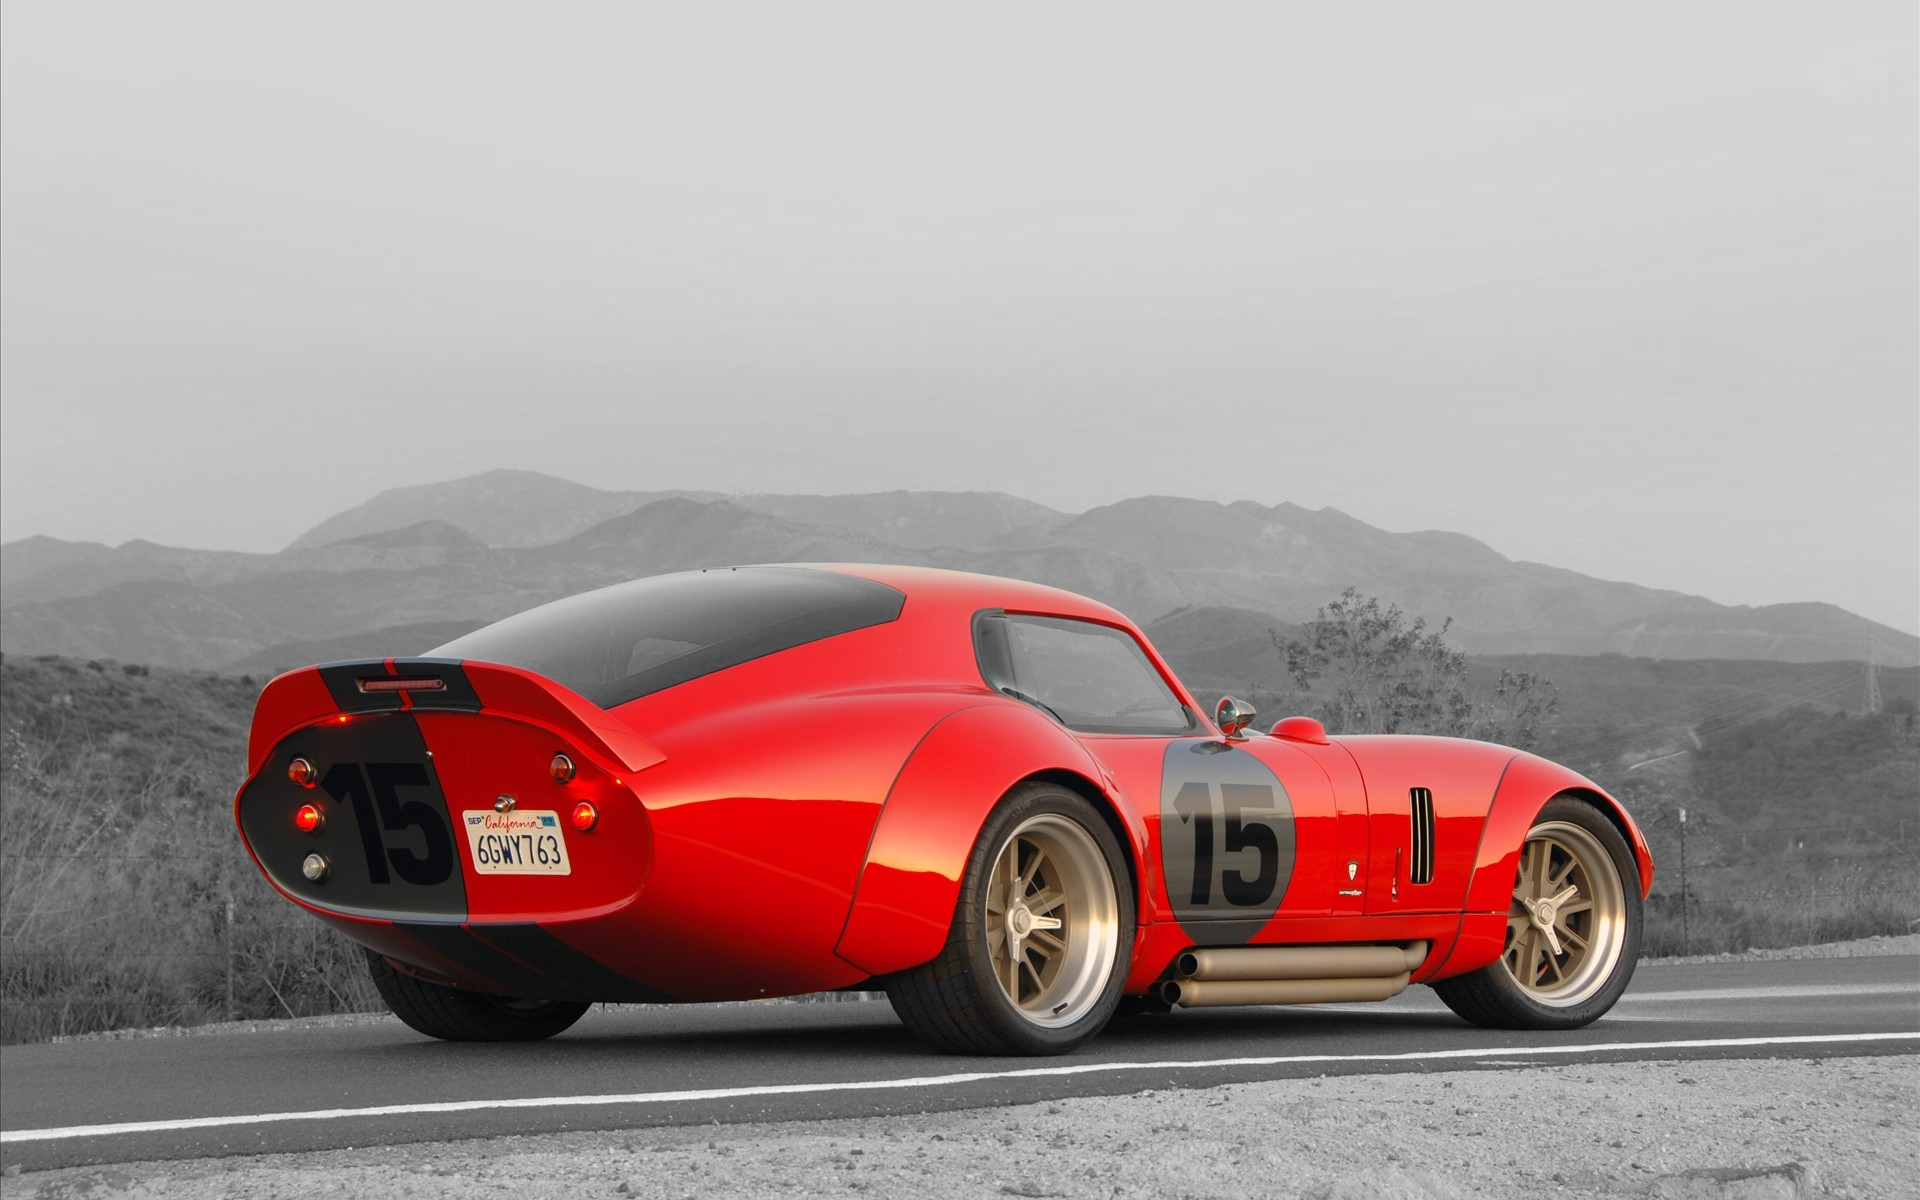 Car shelby cobra daytona coupe wallpapers.